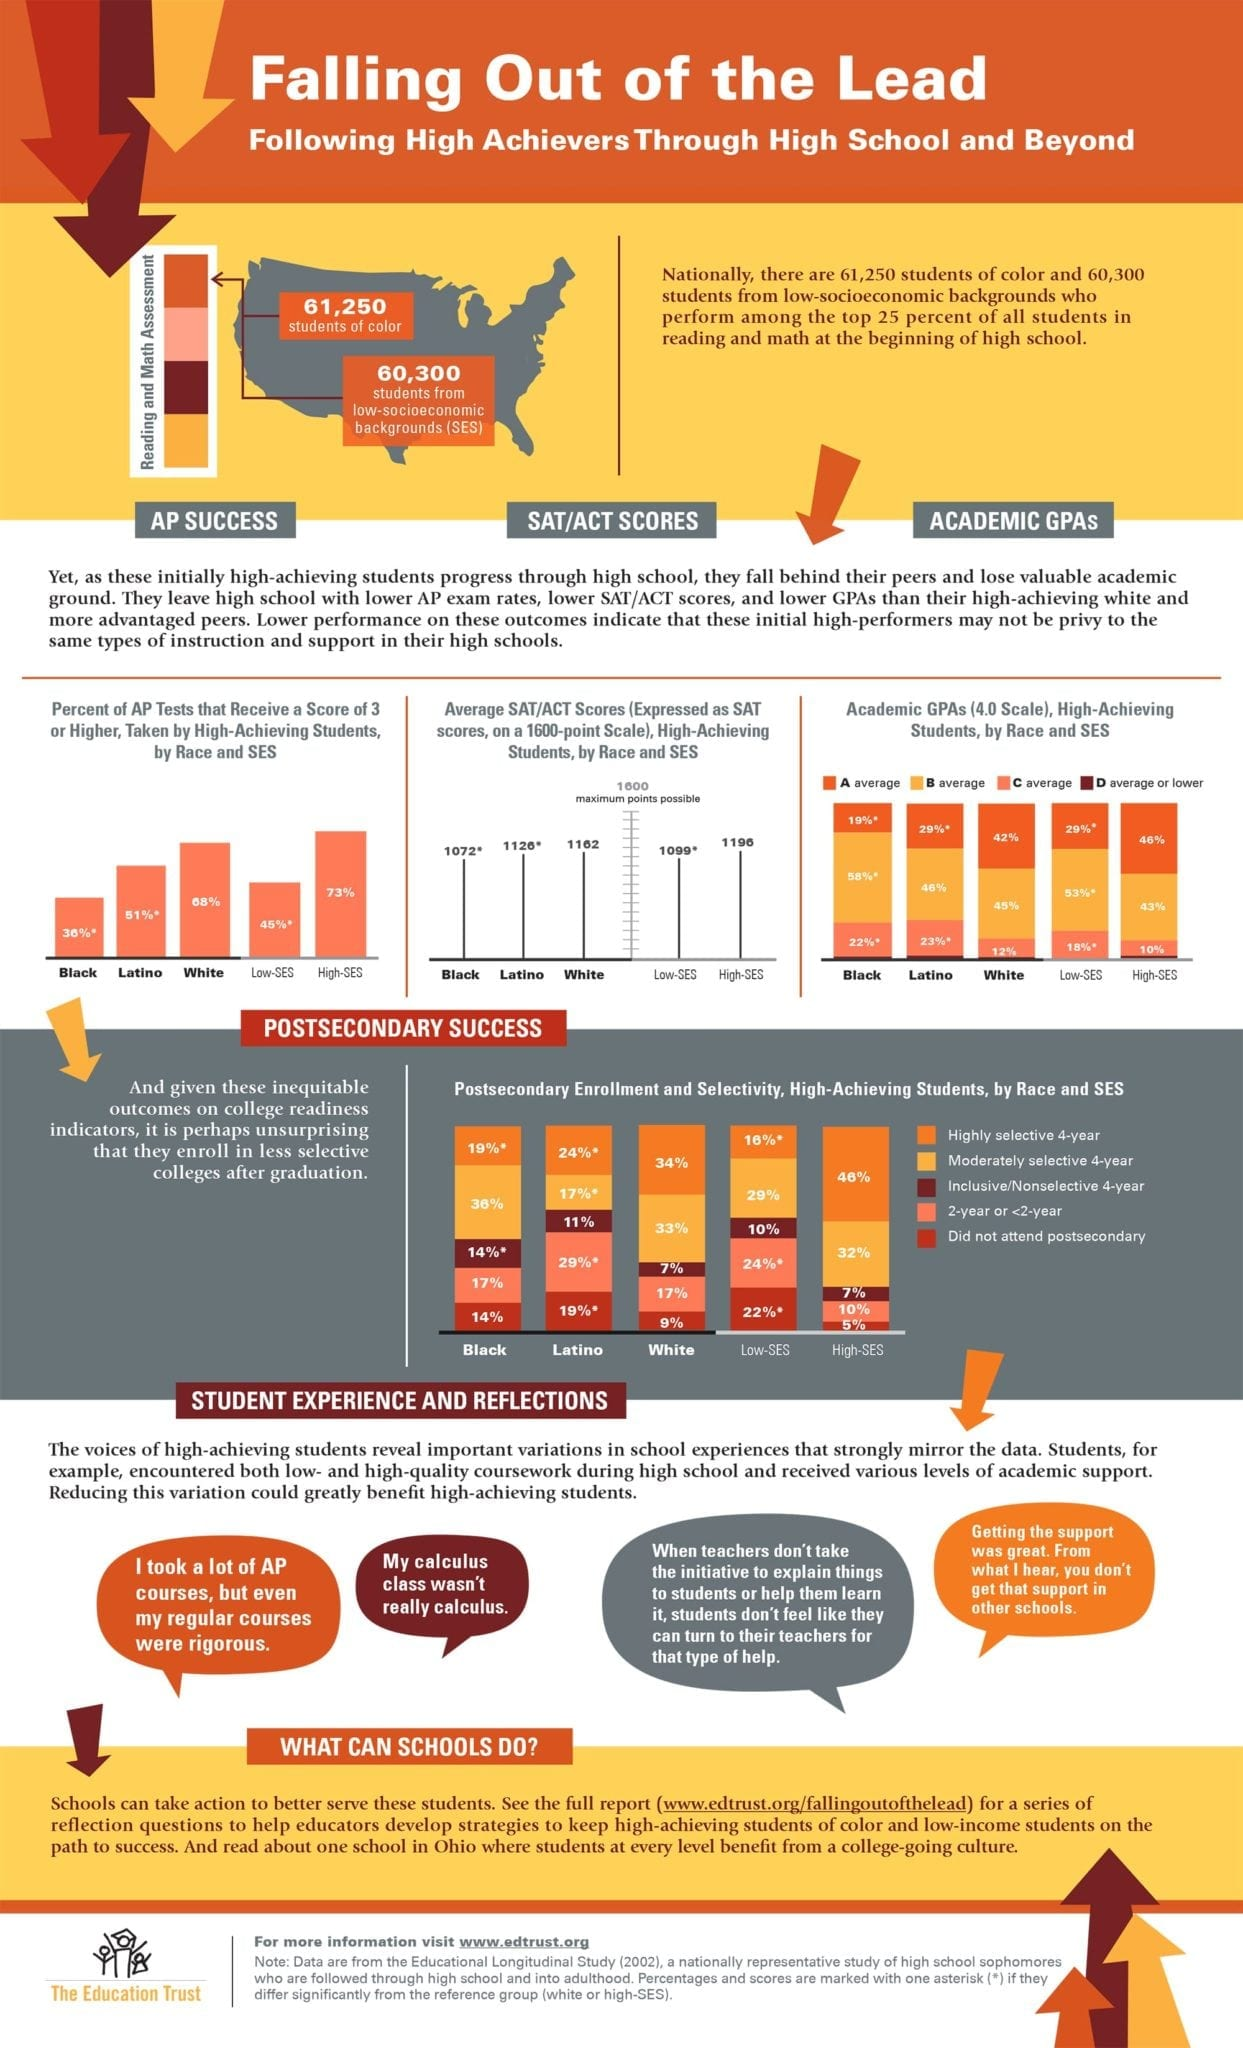 Infographic_FallingOutoftheLead_Revised040114